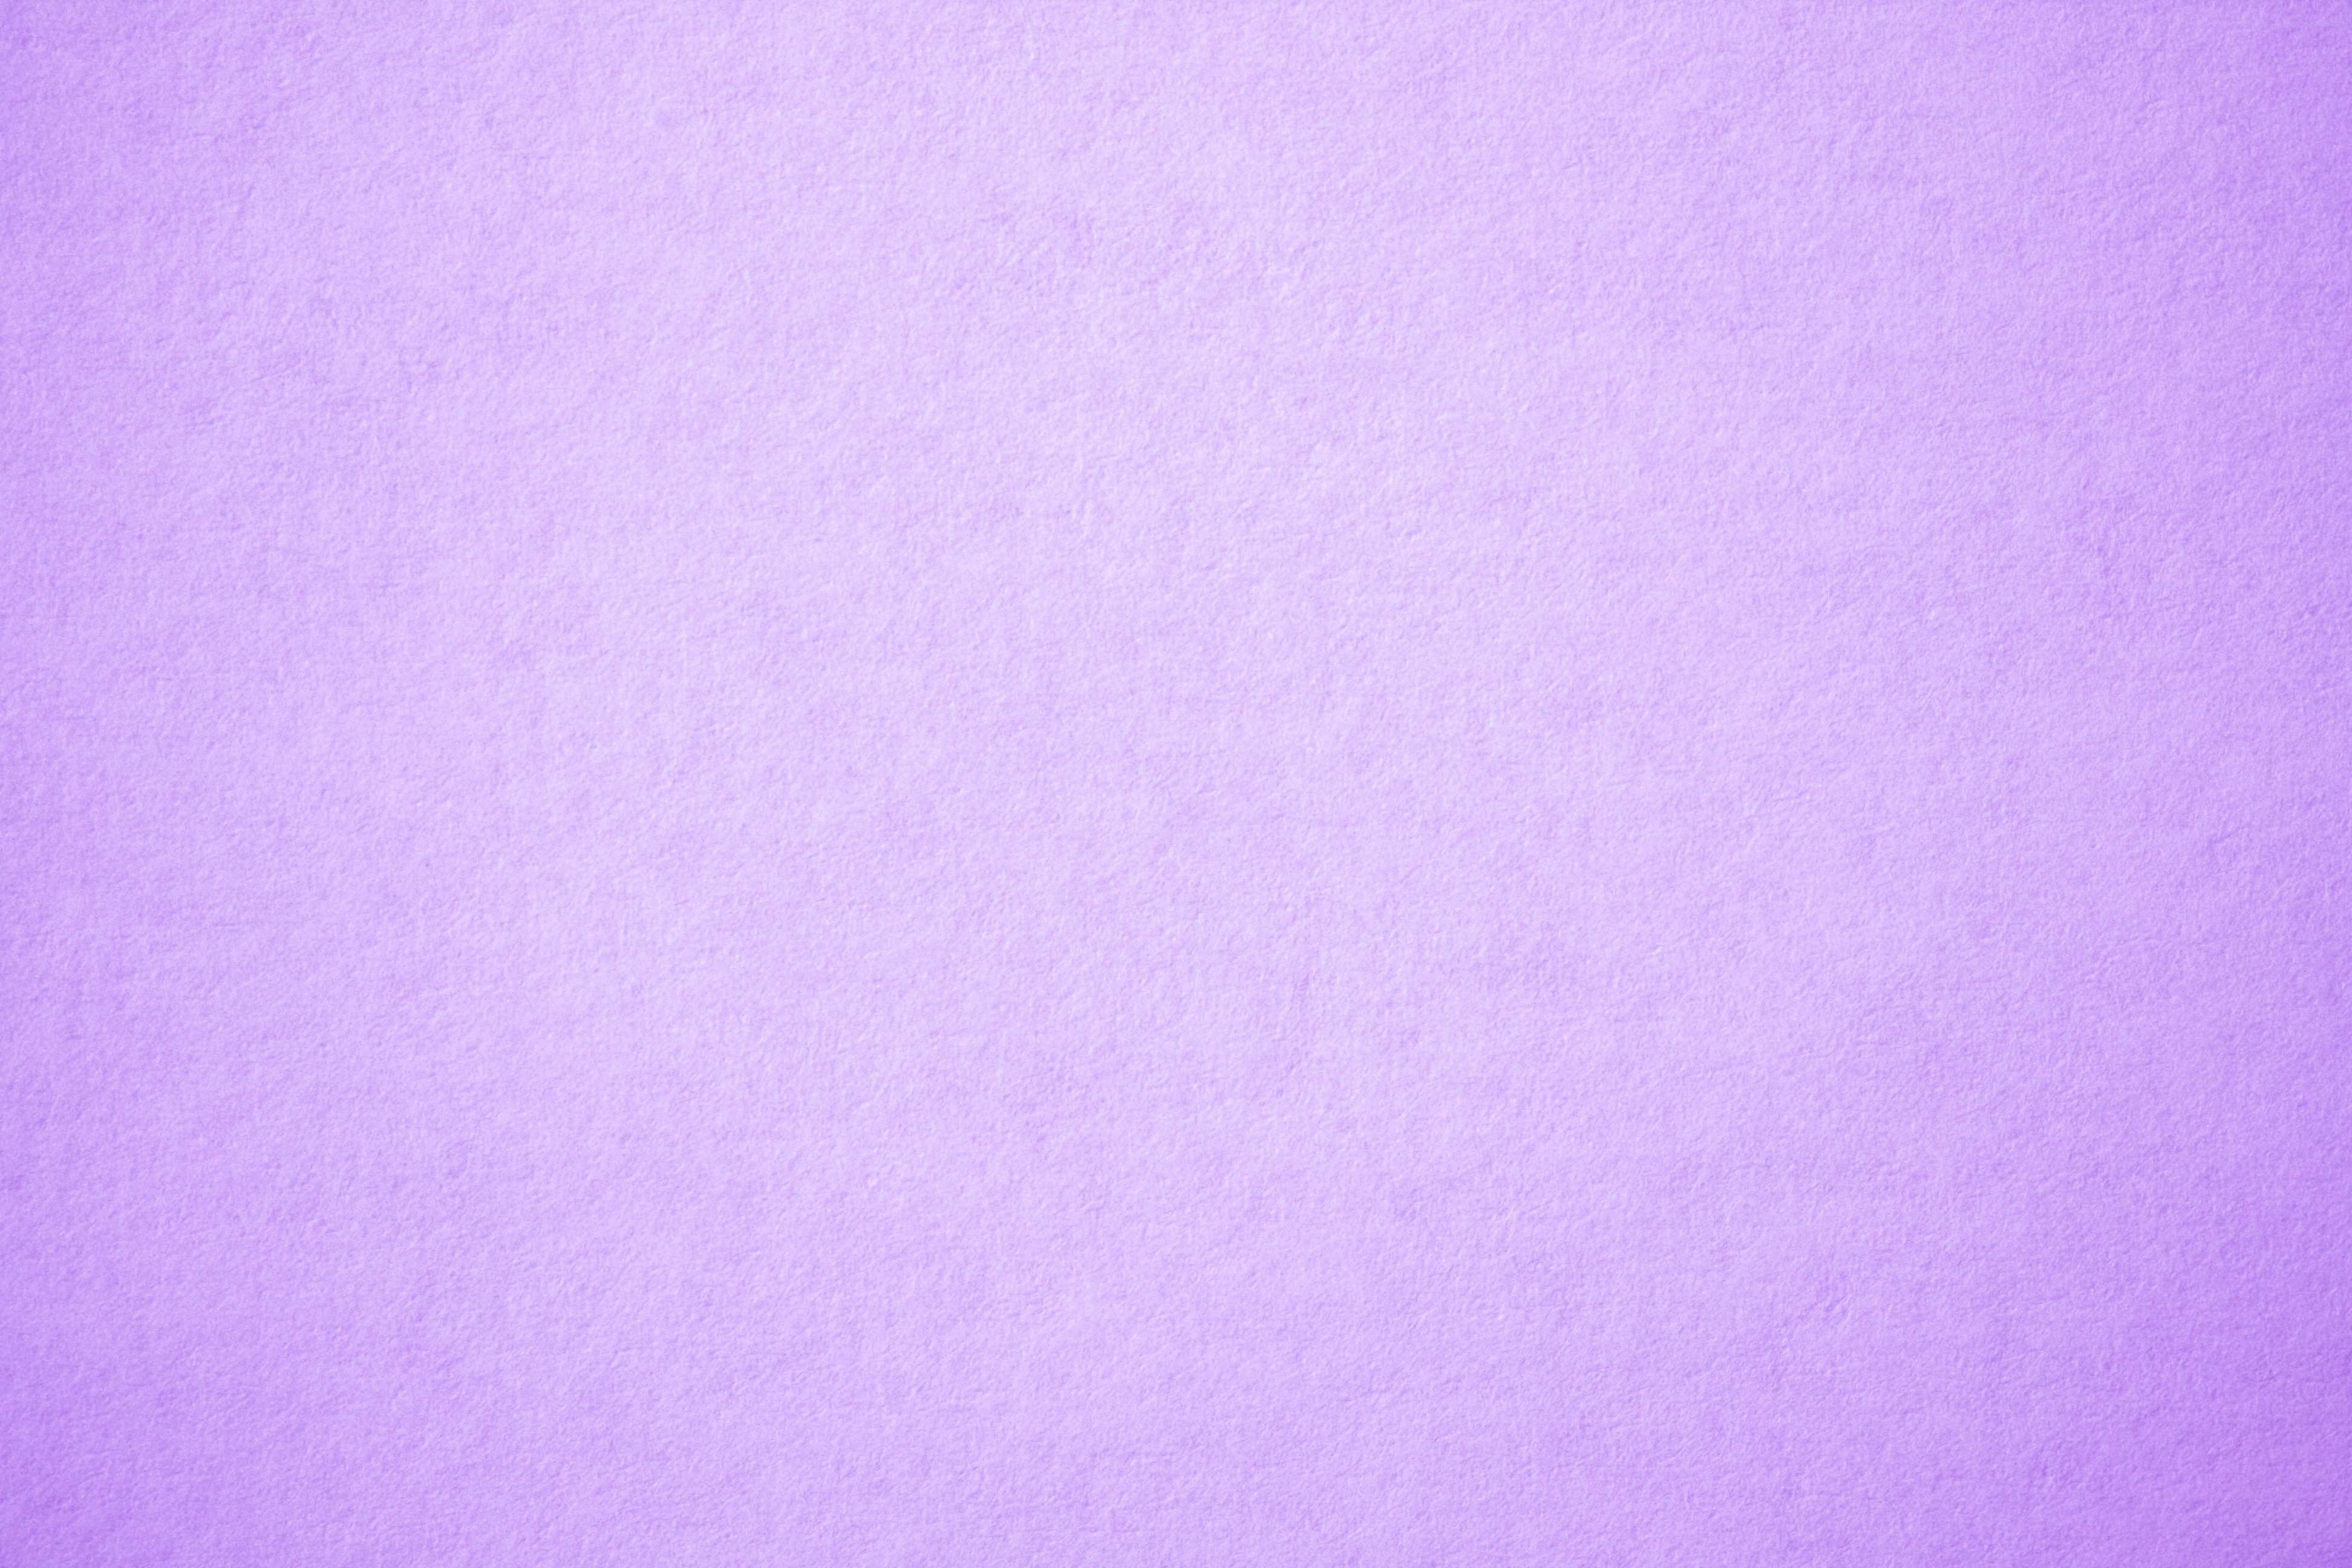 Pink fabric texture free high resolution photo dimensions 3888 - Plain Fabric Texture Red Material Pinterest Fabric Textures And Backgrounds Free